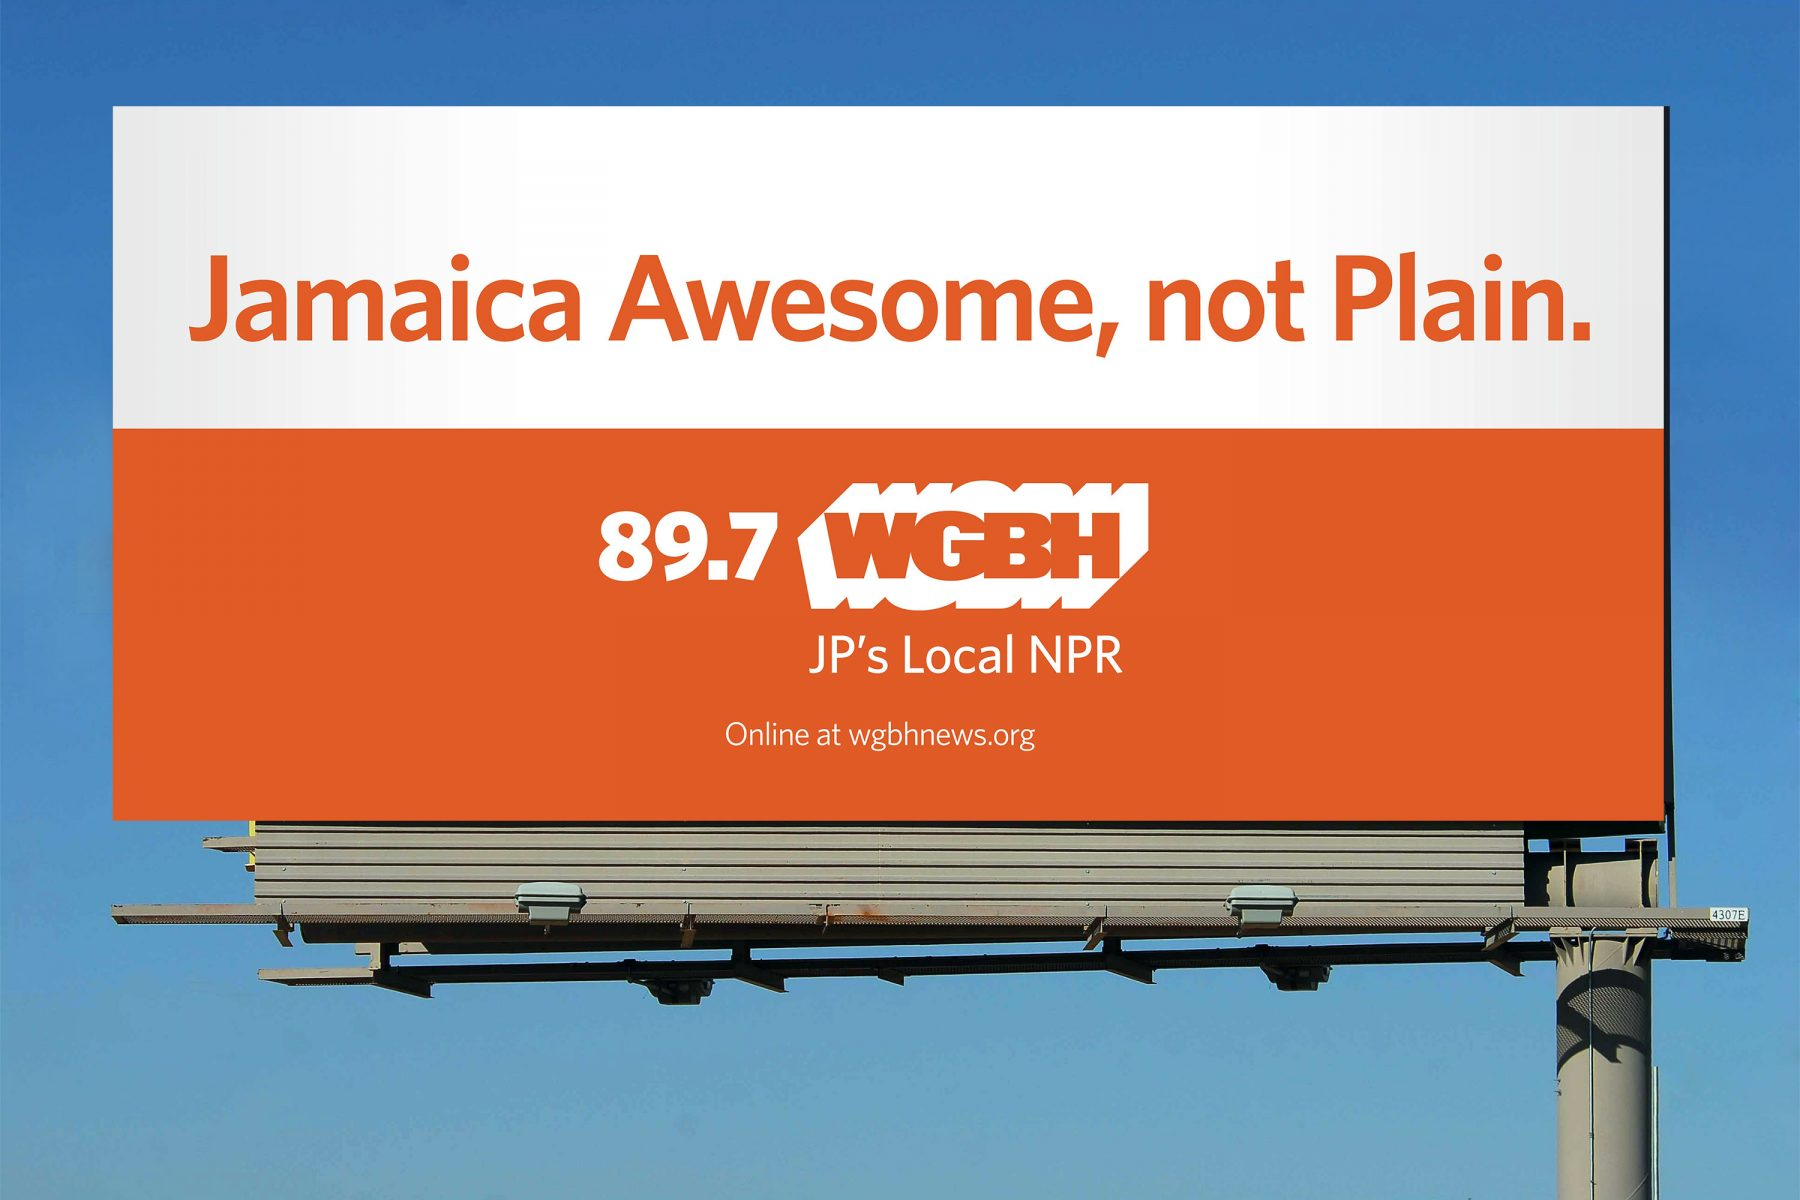 WGBH Billboard: Jamaica Awesome, not Plain.